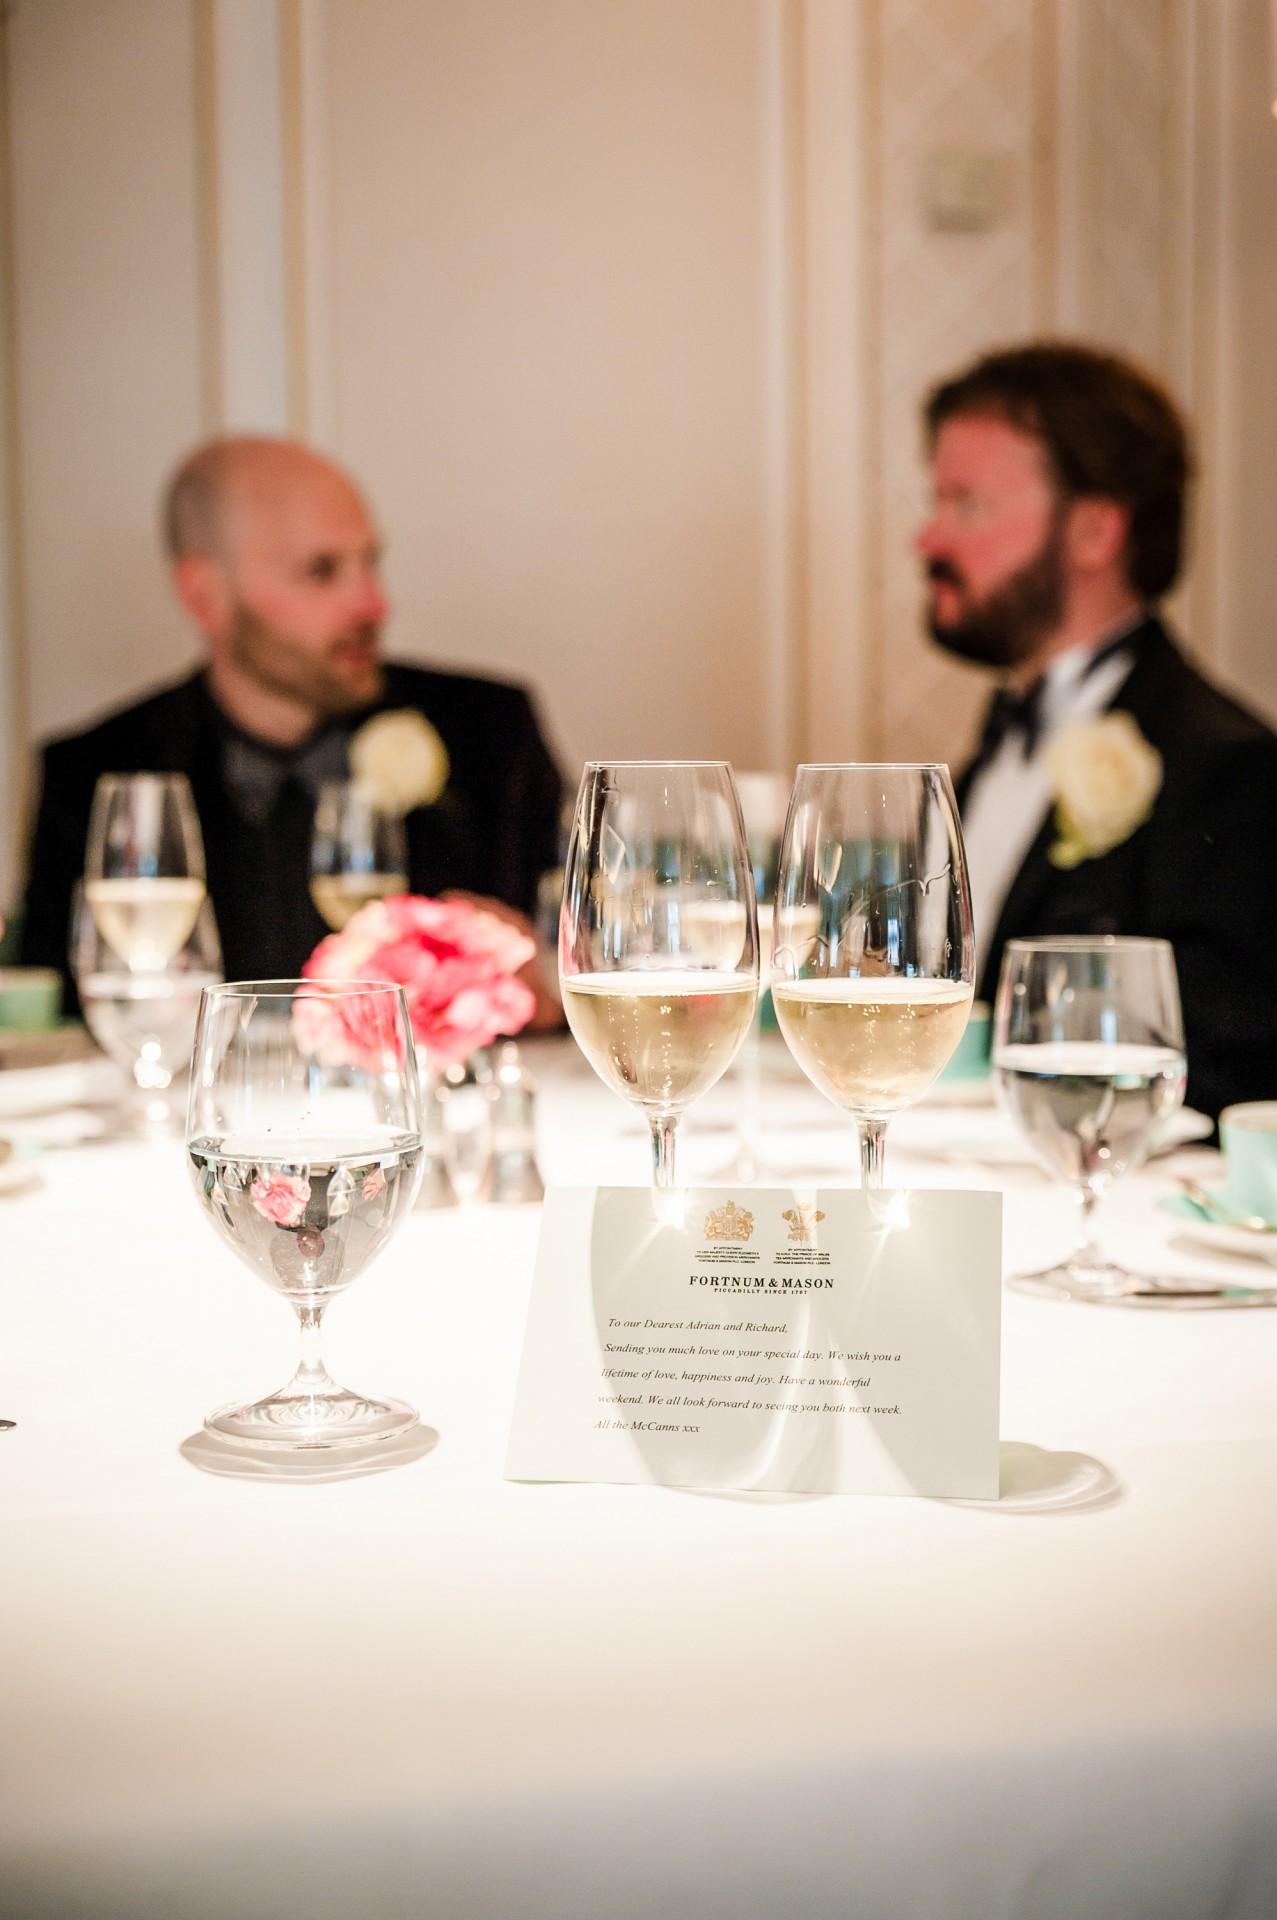 Adrian_Richard_Fortnum-and-Mason-Wedding_031